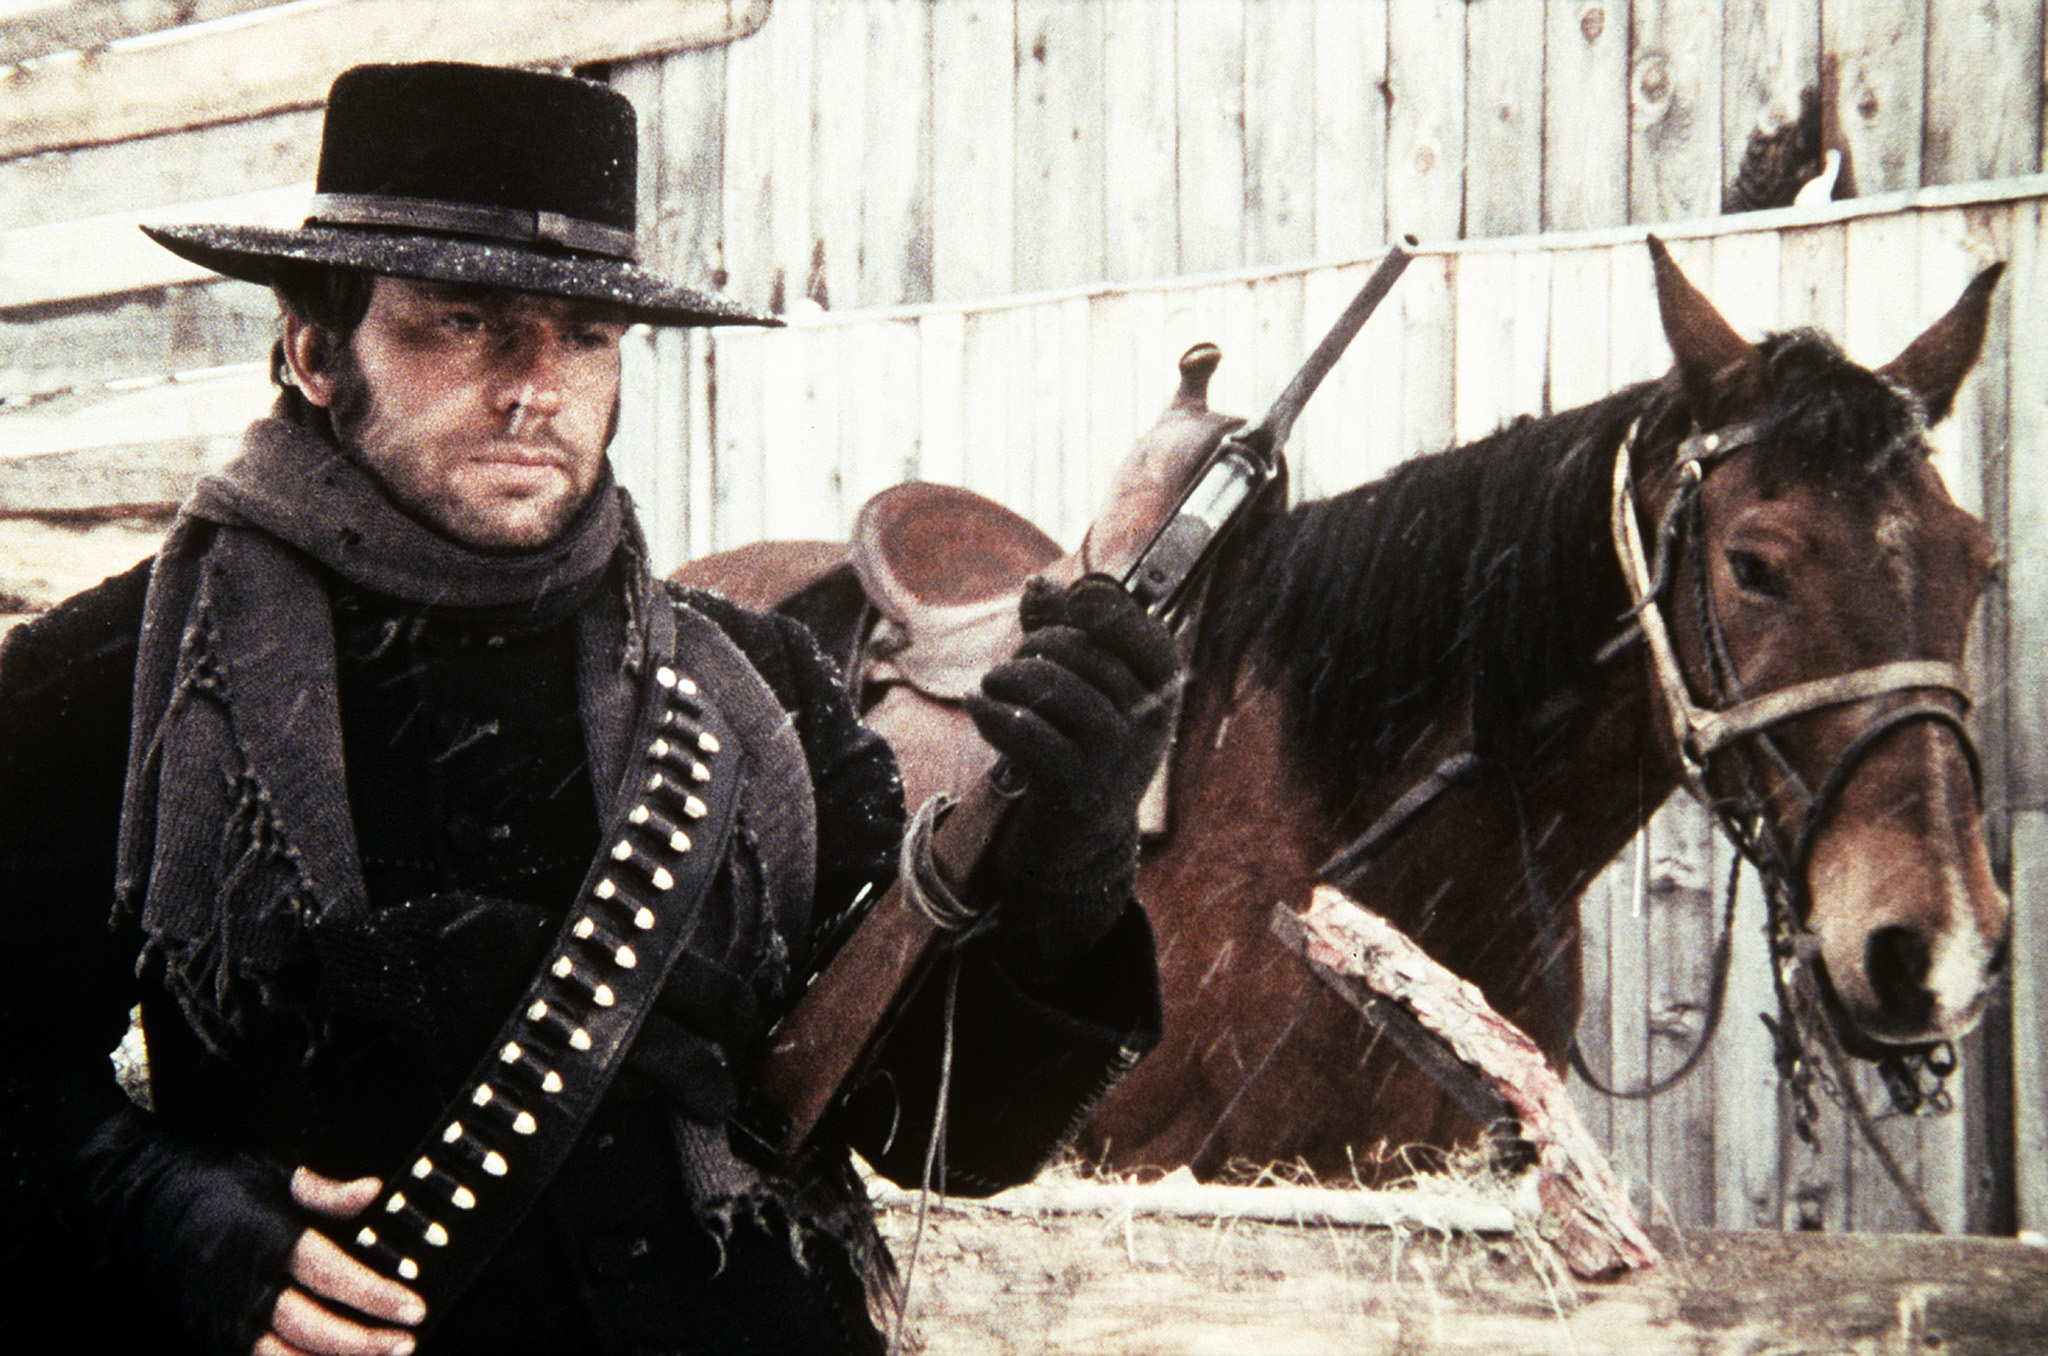 The 50 greatest westerns, best western movies, Great silence